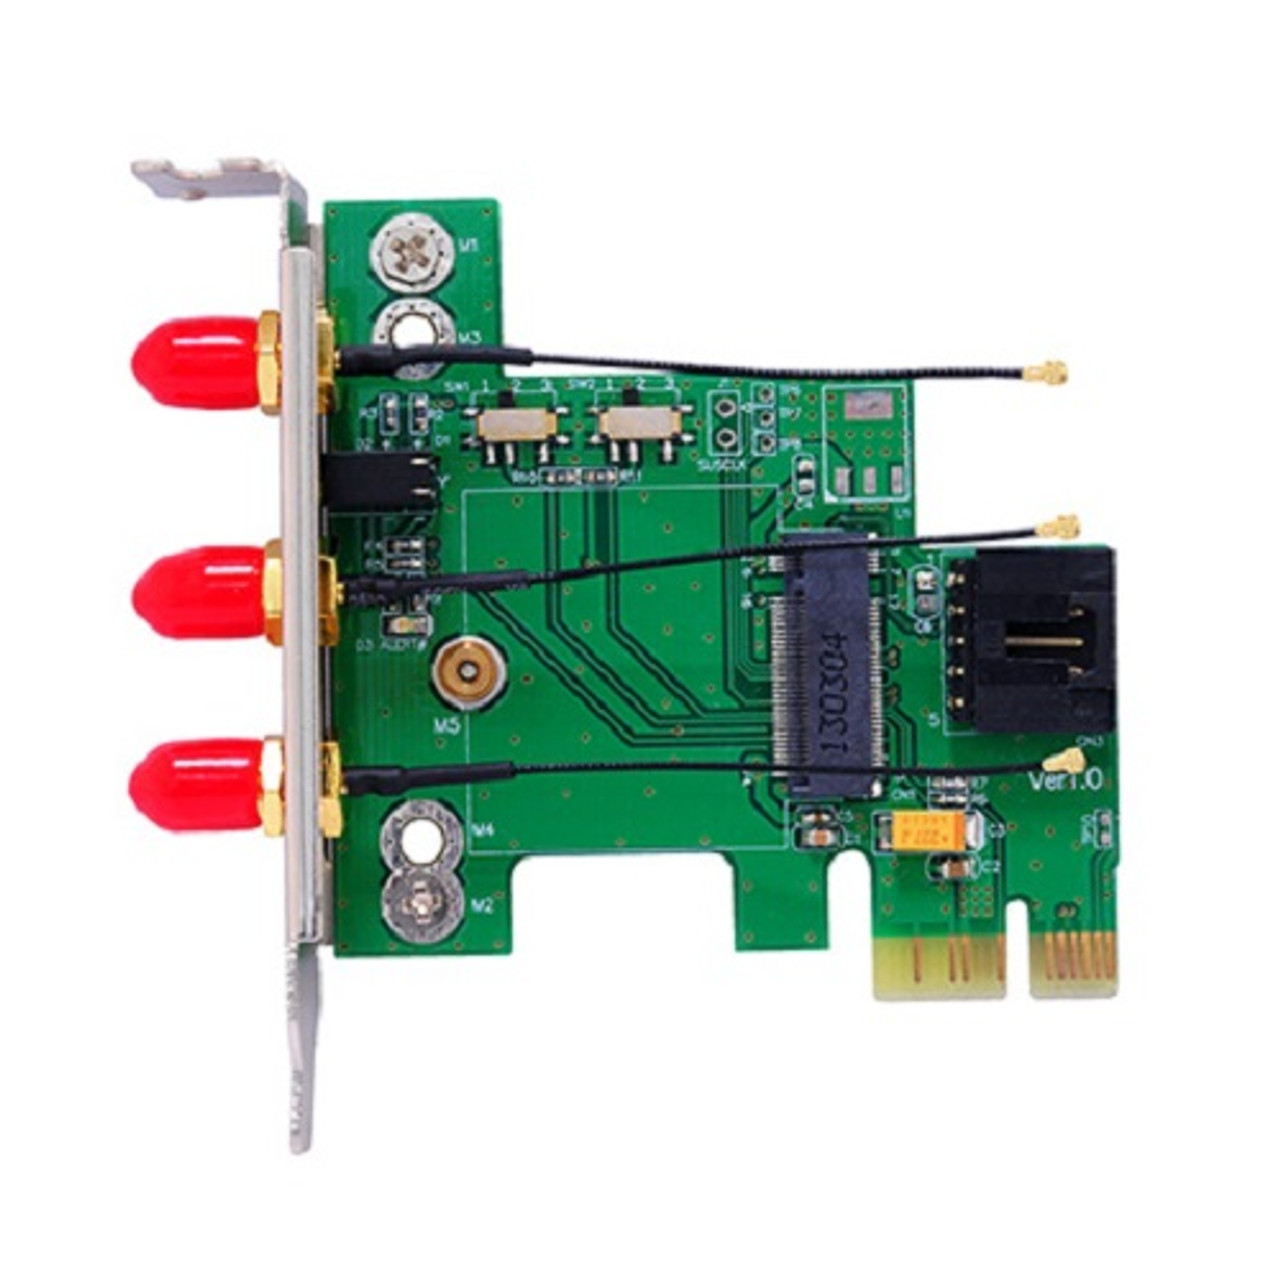 Bplus M2P2H-7260 : M.2 Wireless Card to PCI Express Adapter, 2.4/5.0 GHz with Intel wireless AC 7260NGW/7260NGWGR card